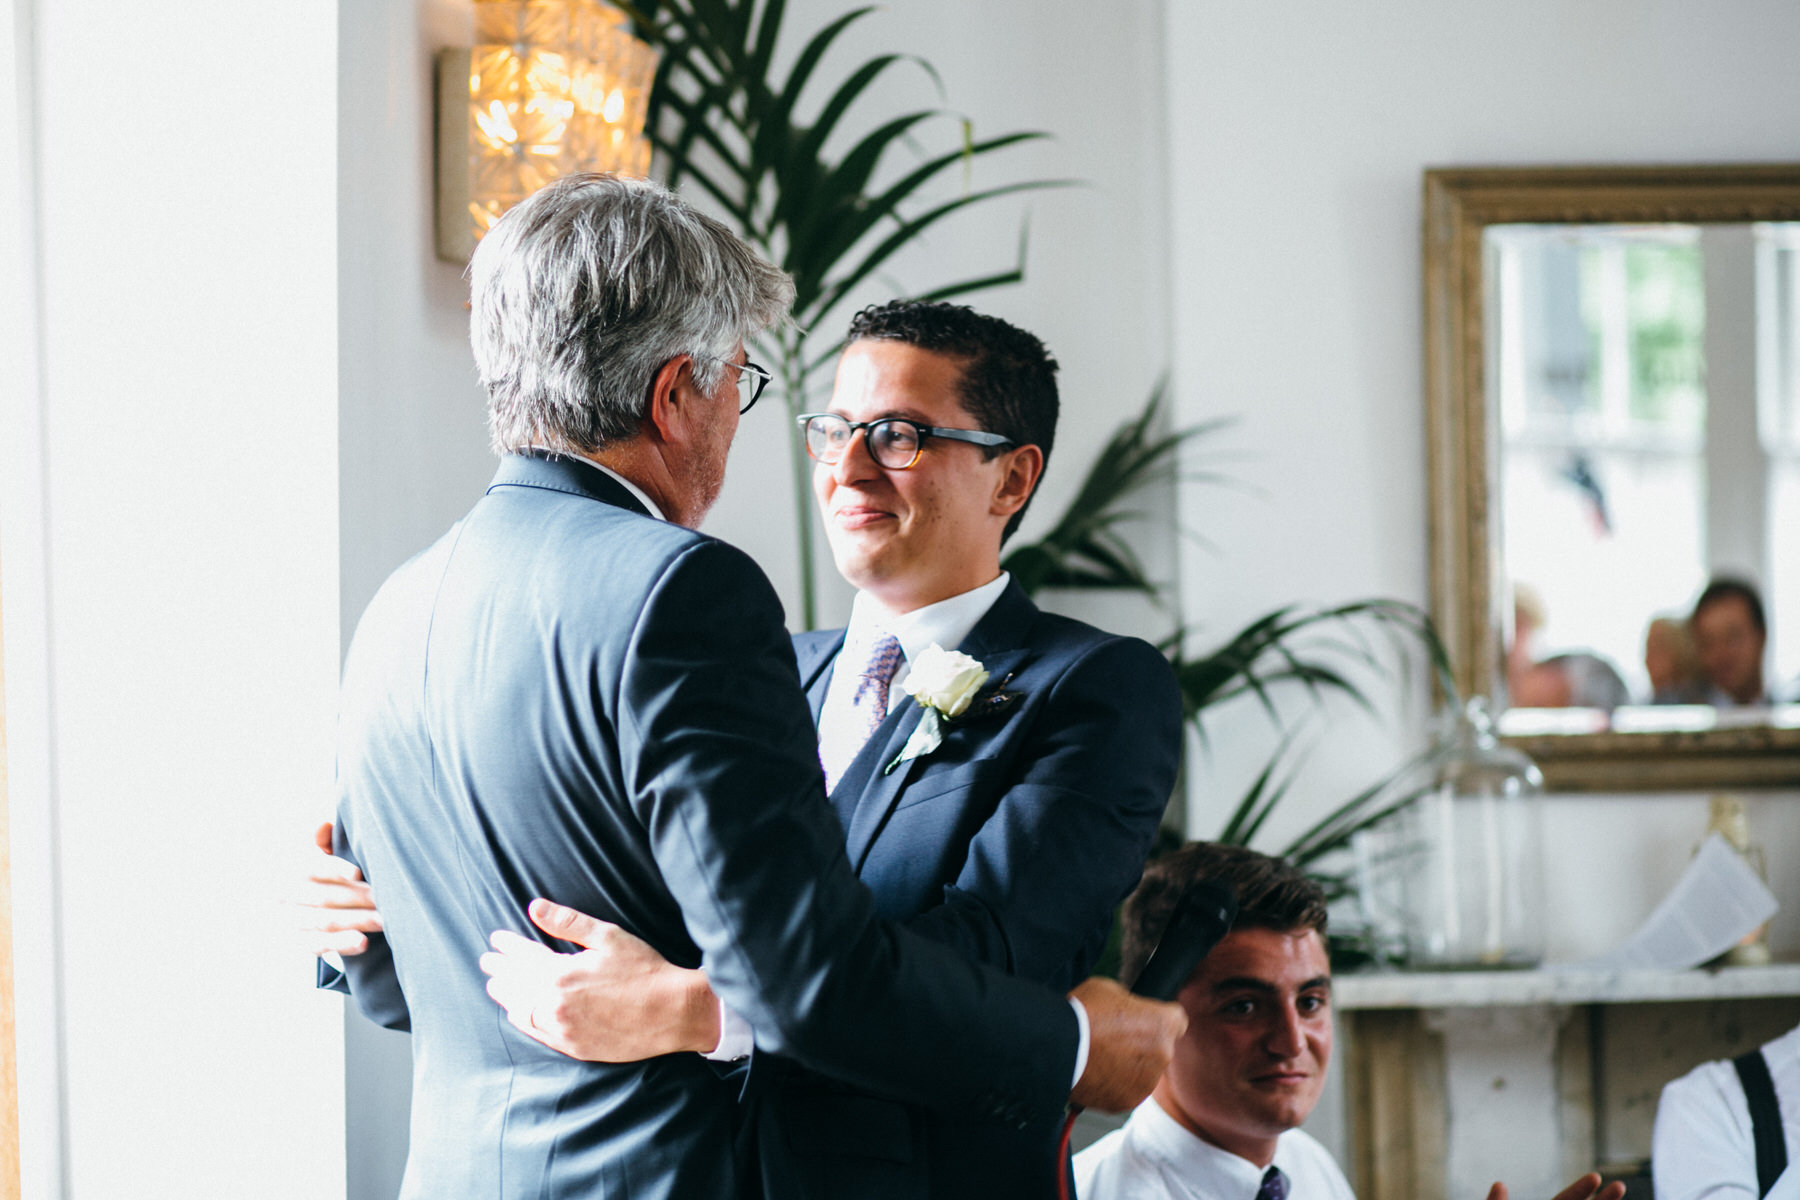 groom hugs father The Stag Hampstead wedding reception French English styling speeches.jpg